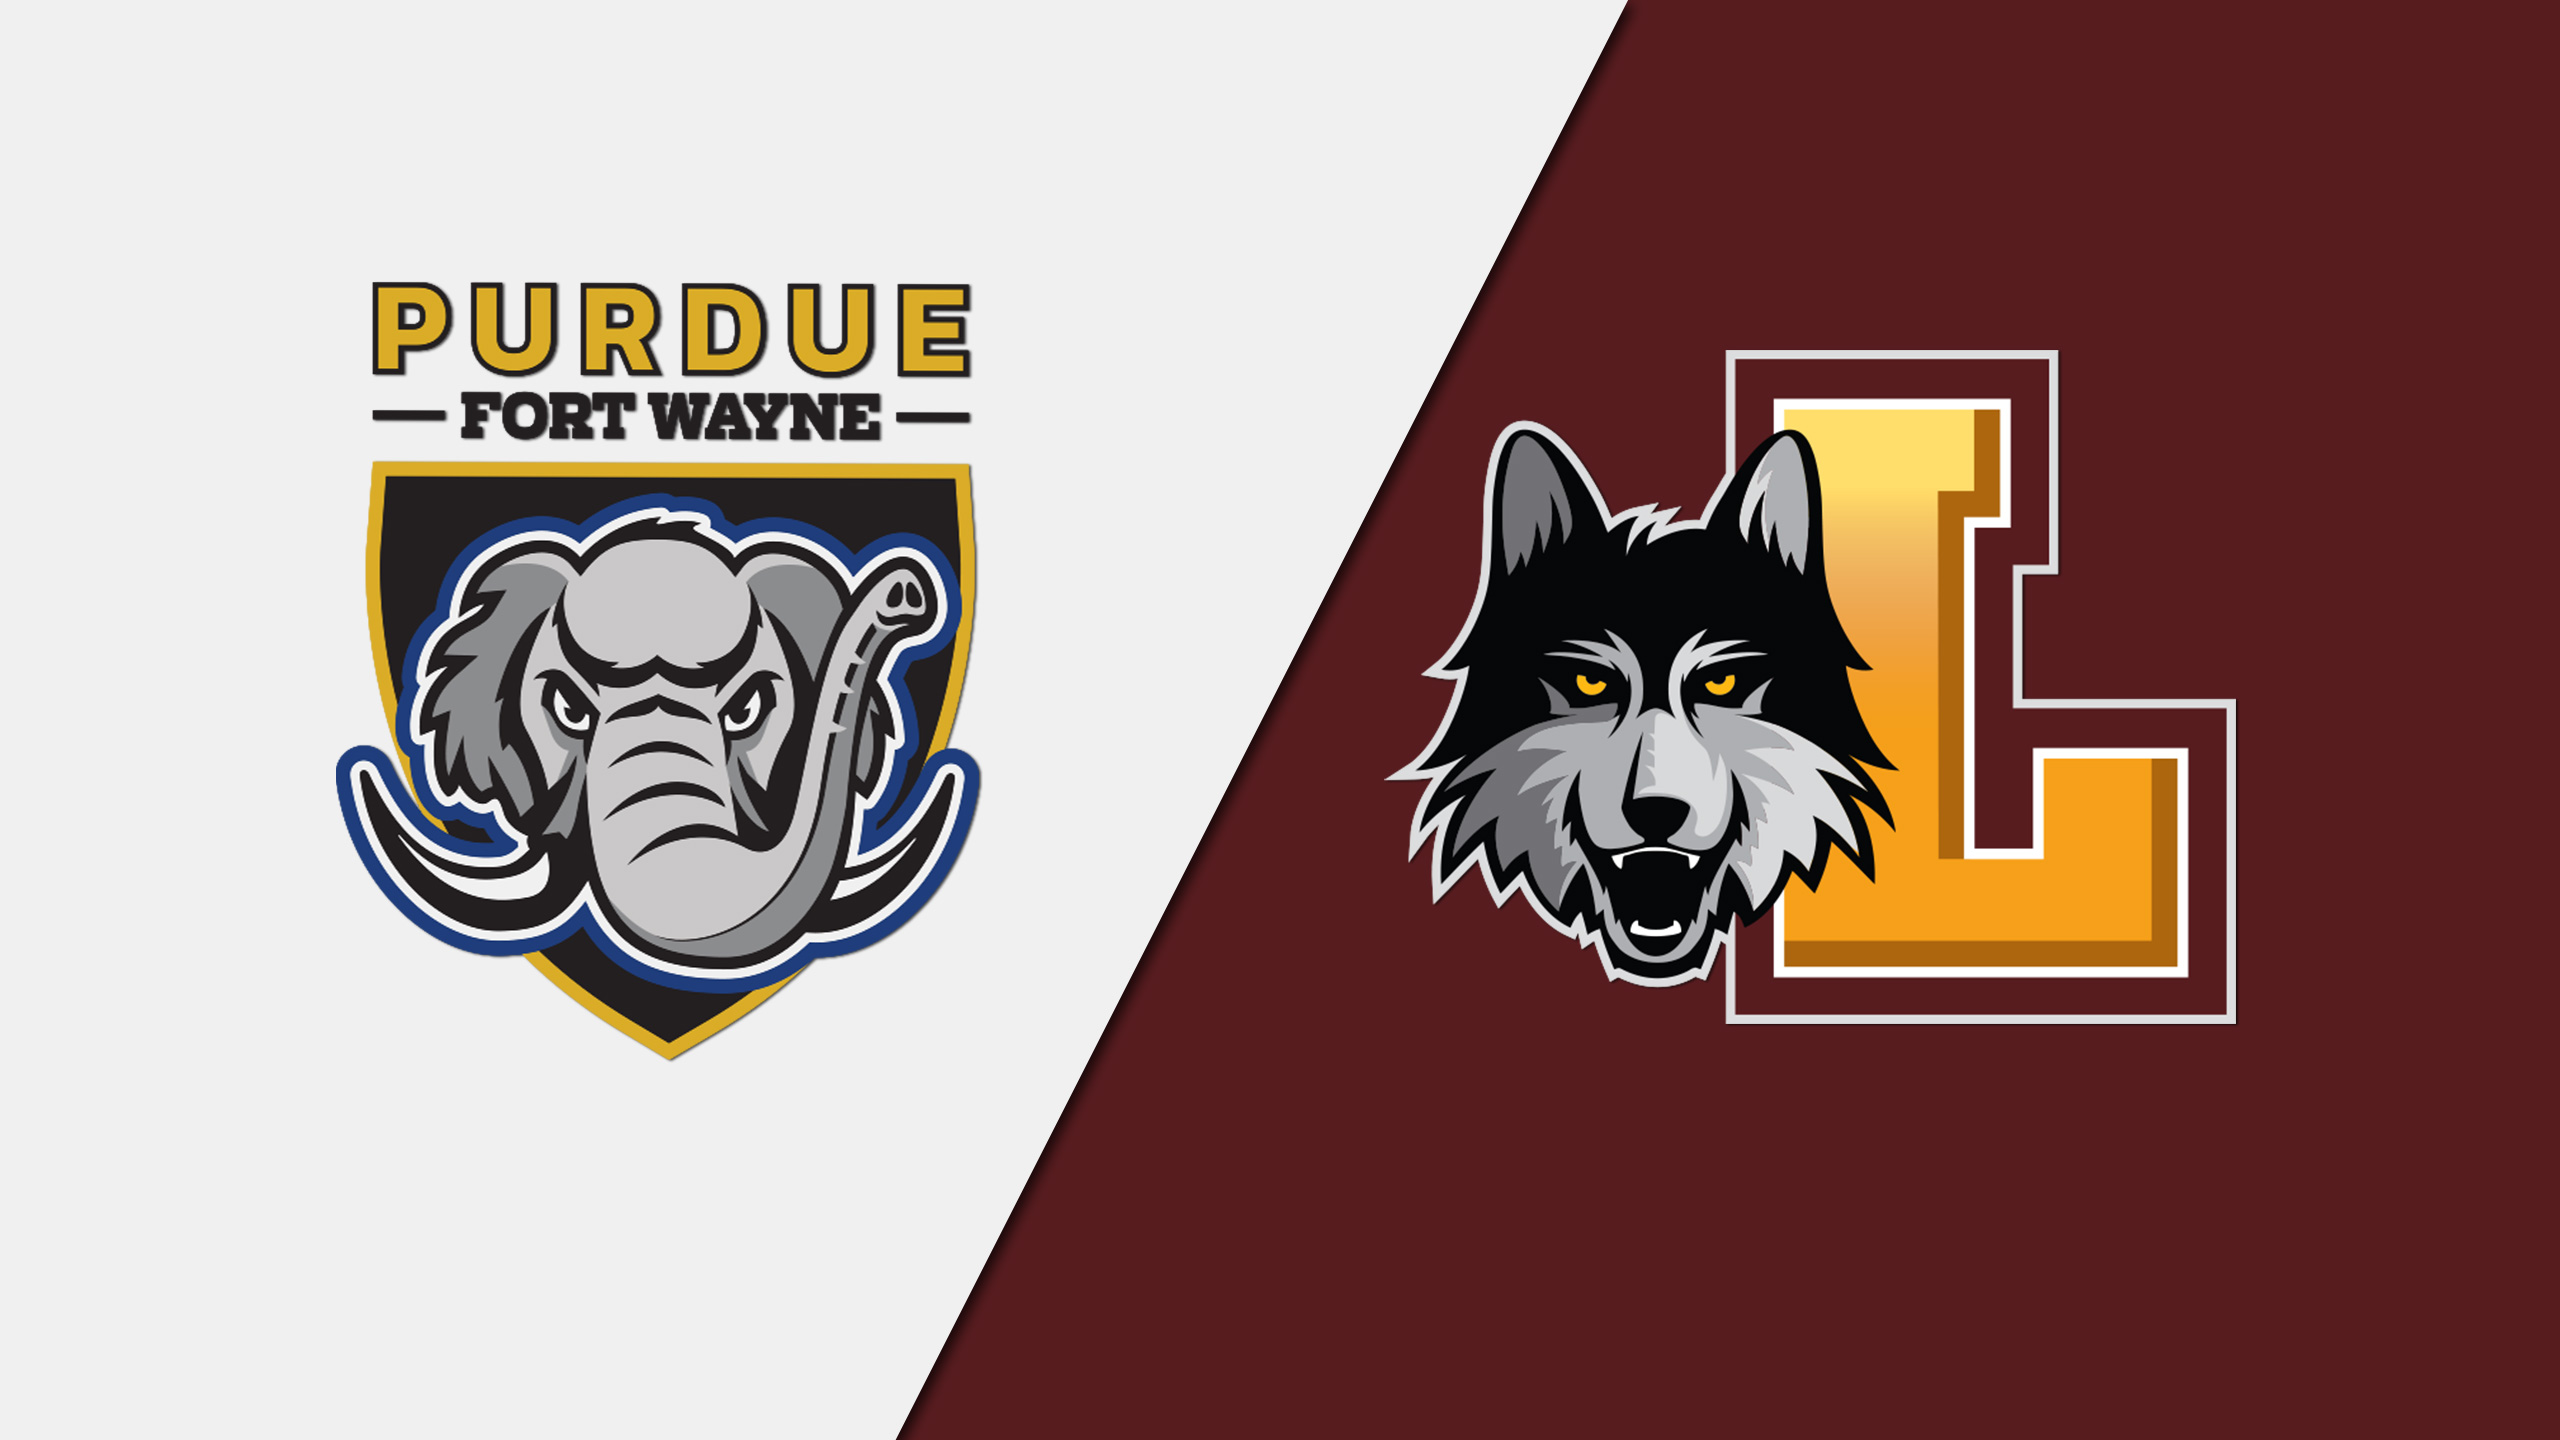 Purdue Fort Wayne vs. Loyola-Chicago